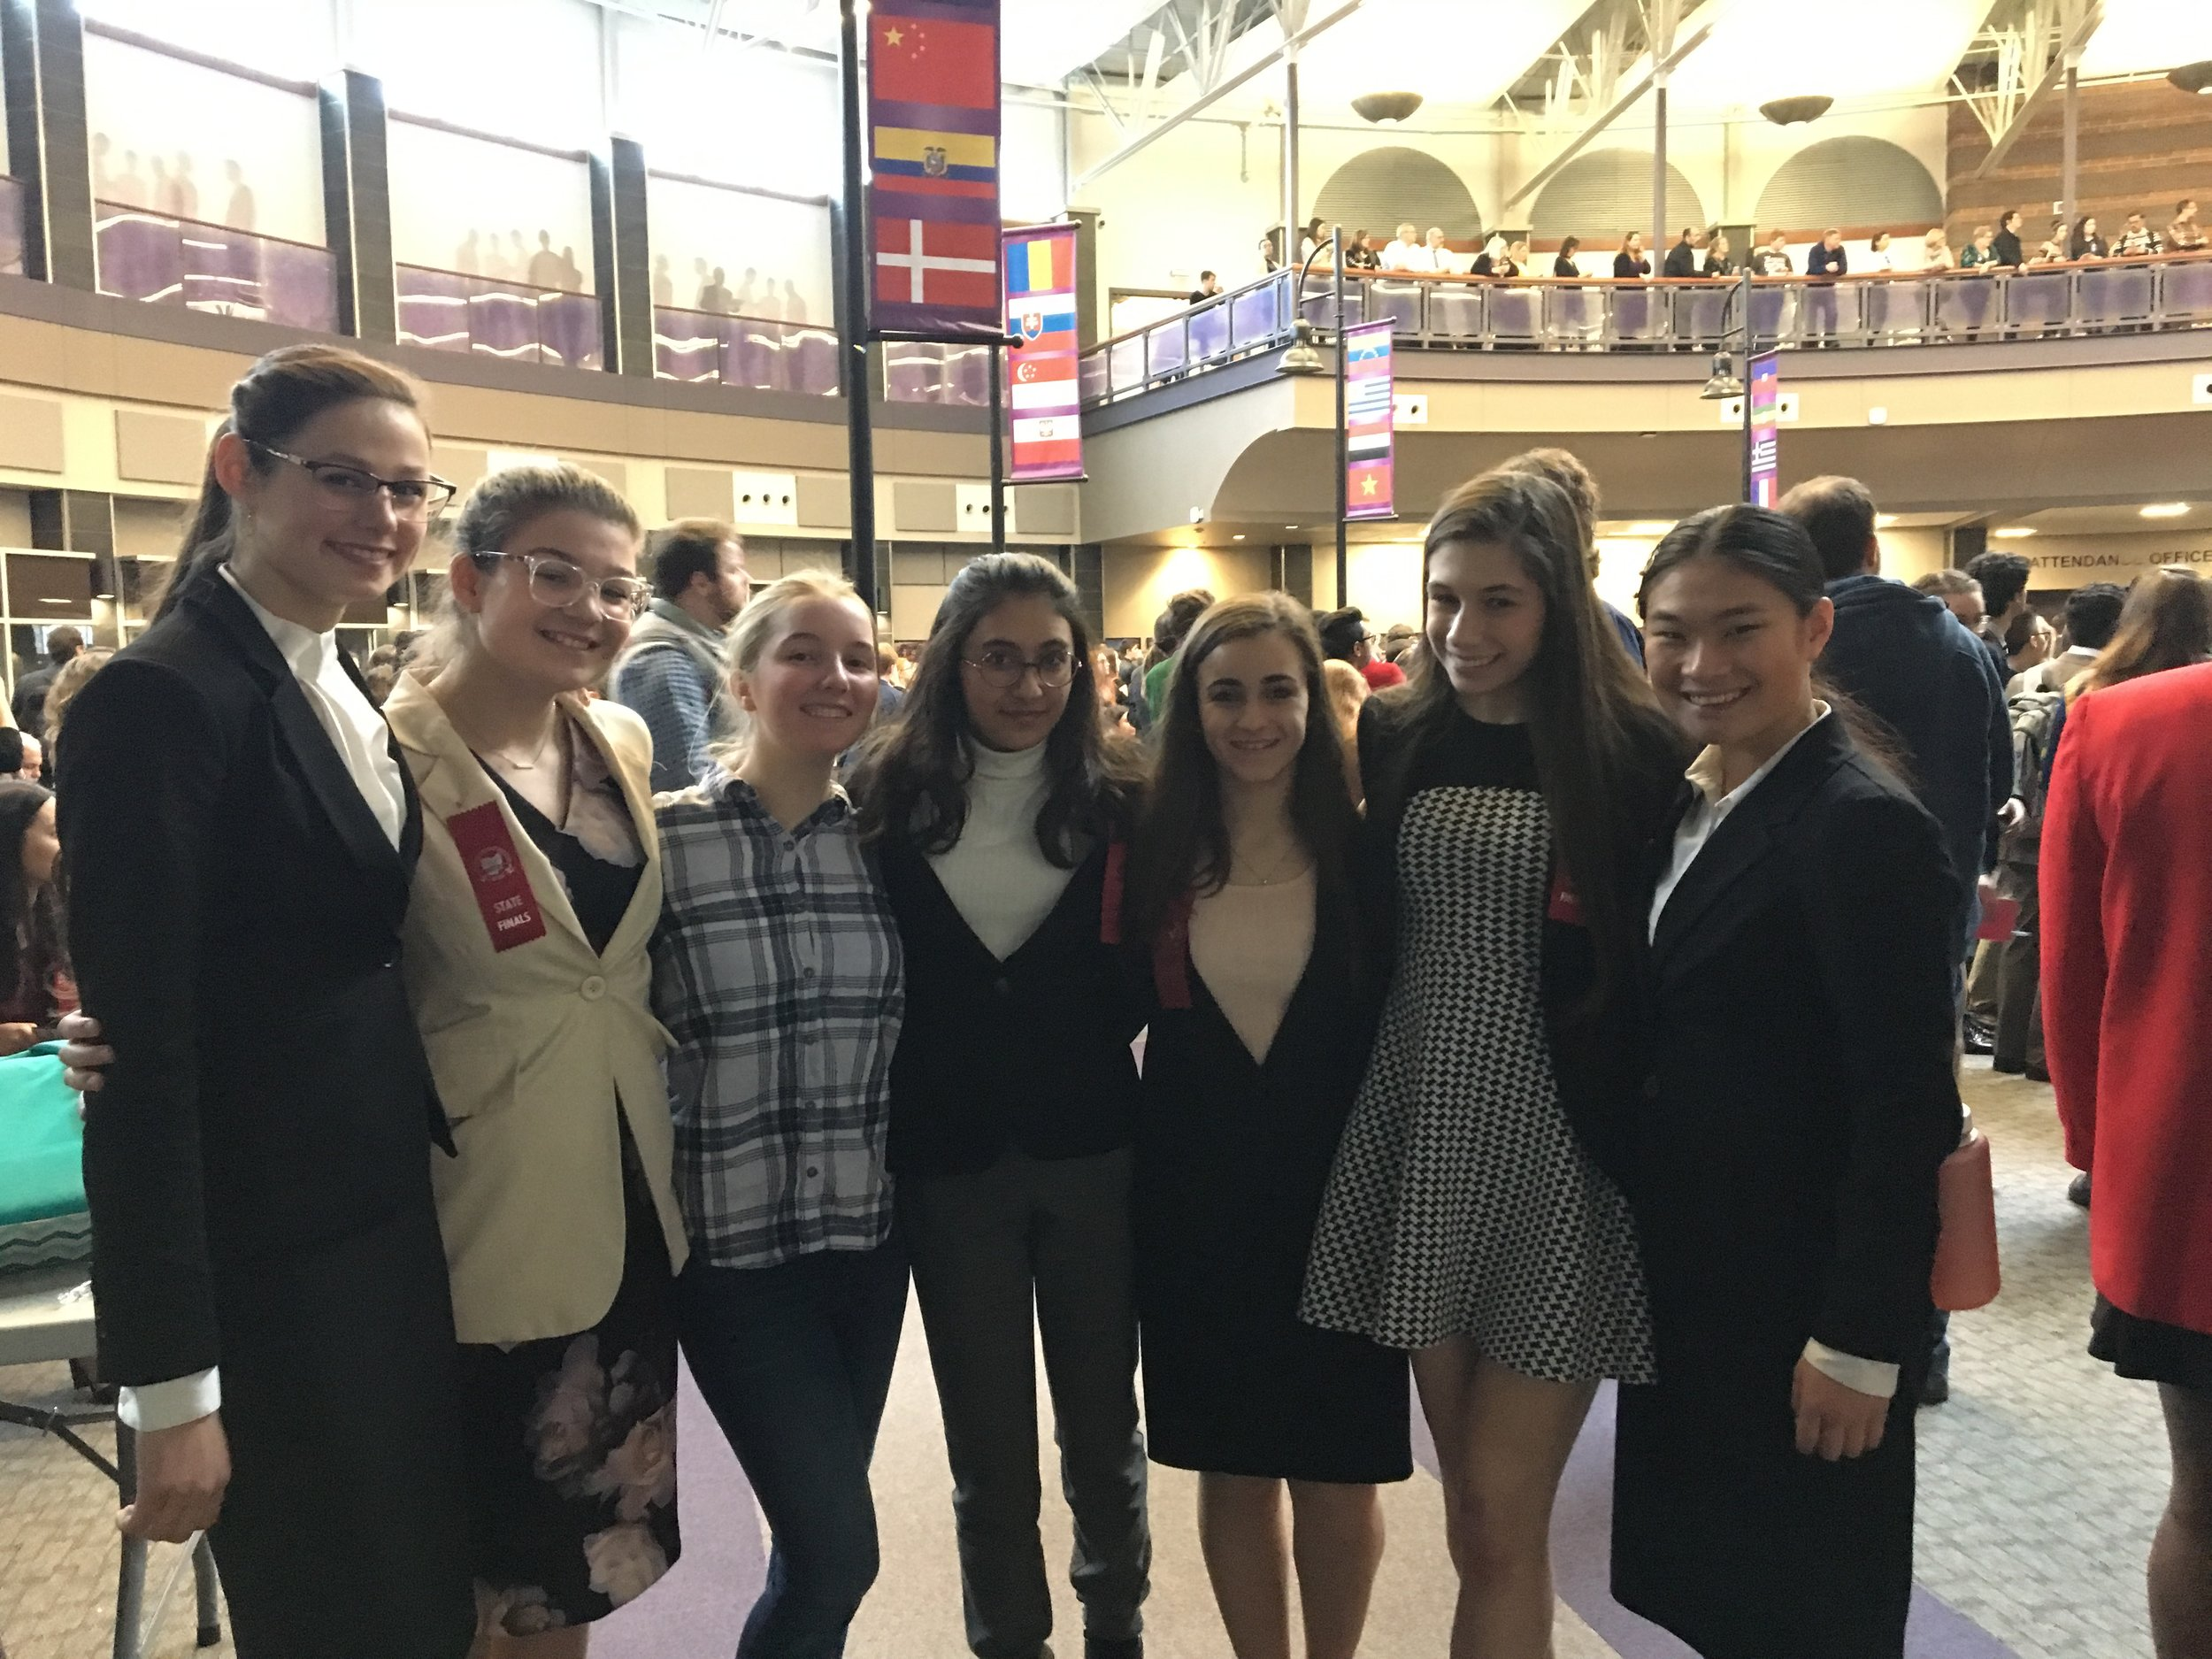 Members of the Elms Speech and Debate Team at the OSDA State Finals are Abigail Cox '19, Adeline Hatfield '20 , Josie Rozner '20, Sara Khan '21, Lacy Nicholas '21, Zoe Zelch '19, and Emily Arnold '21.